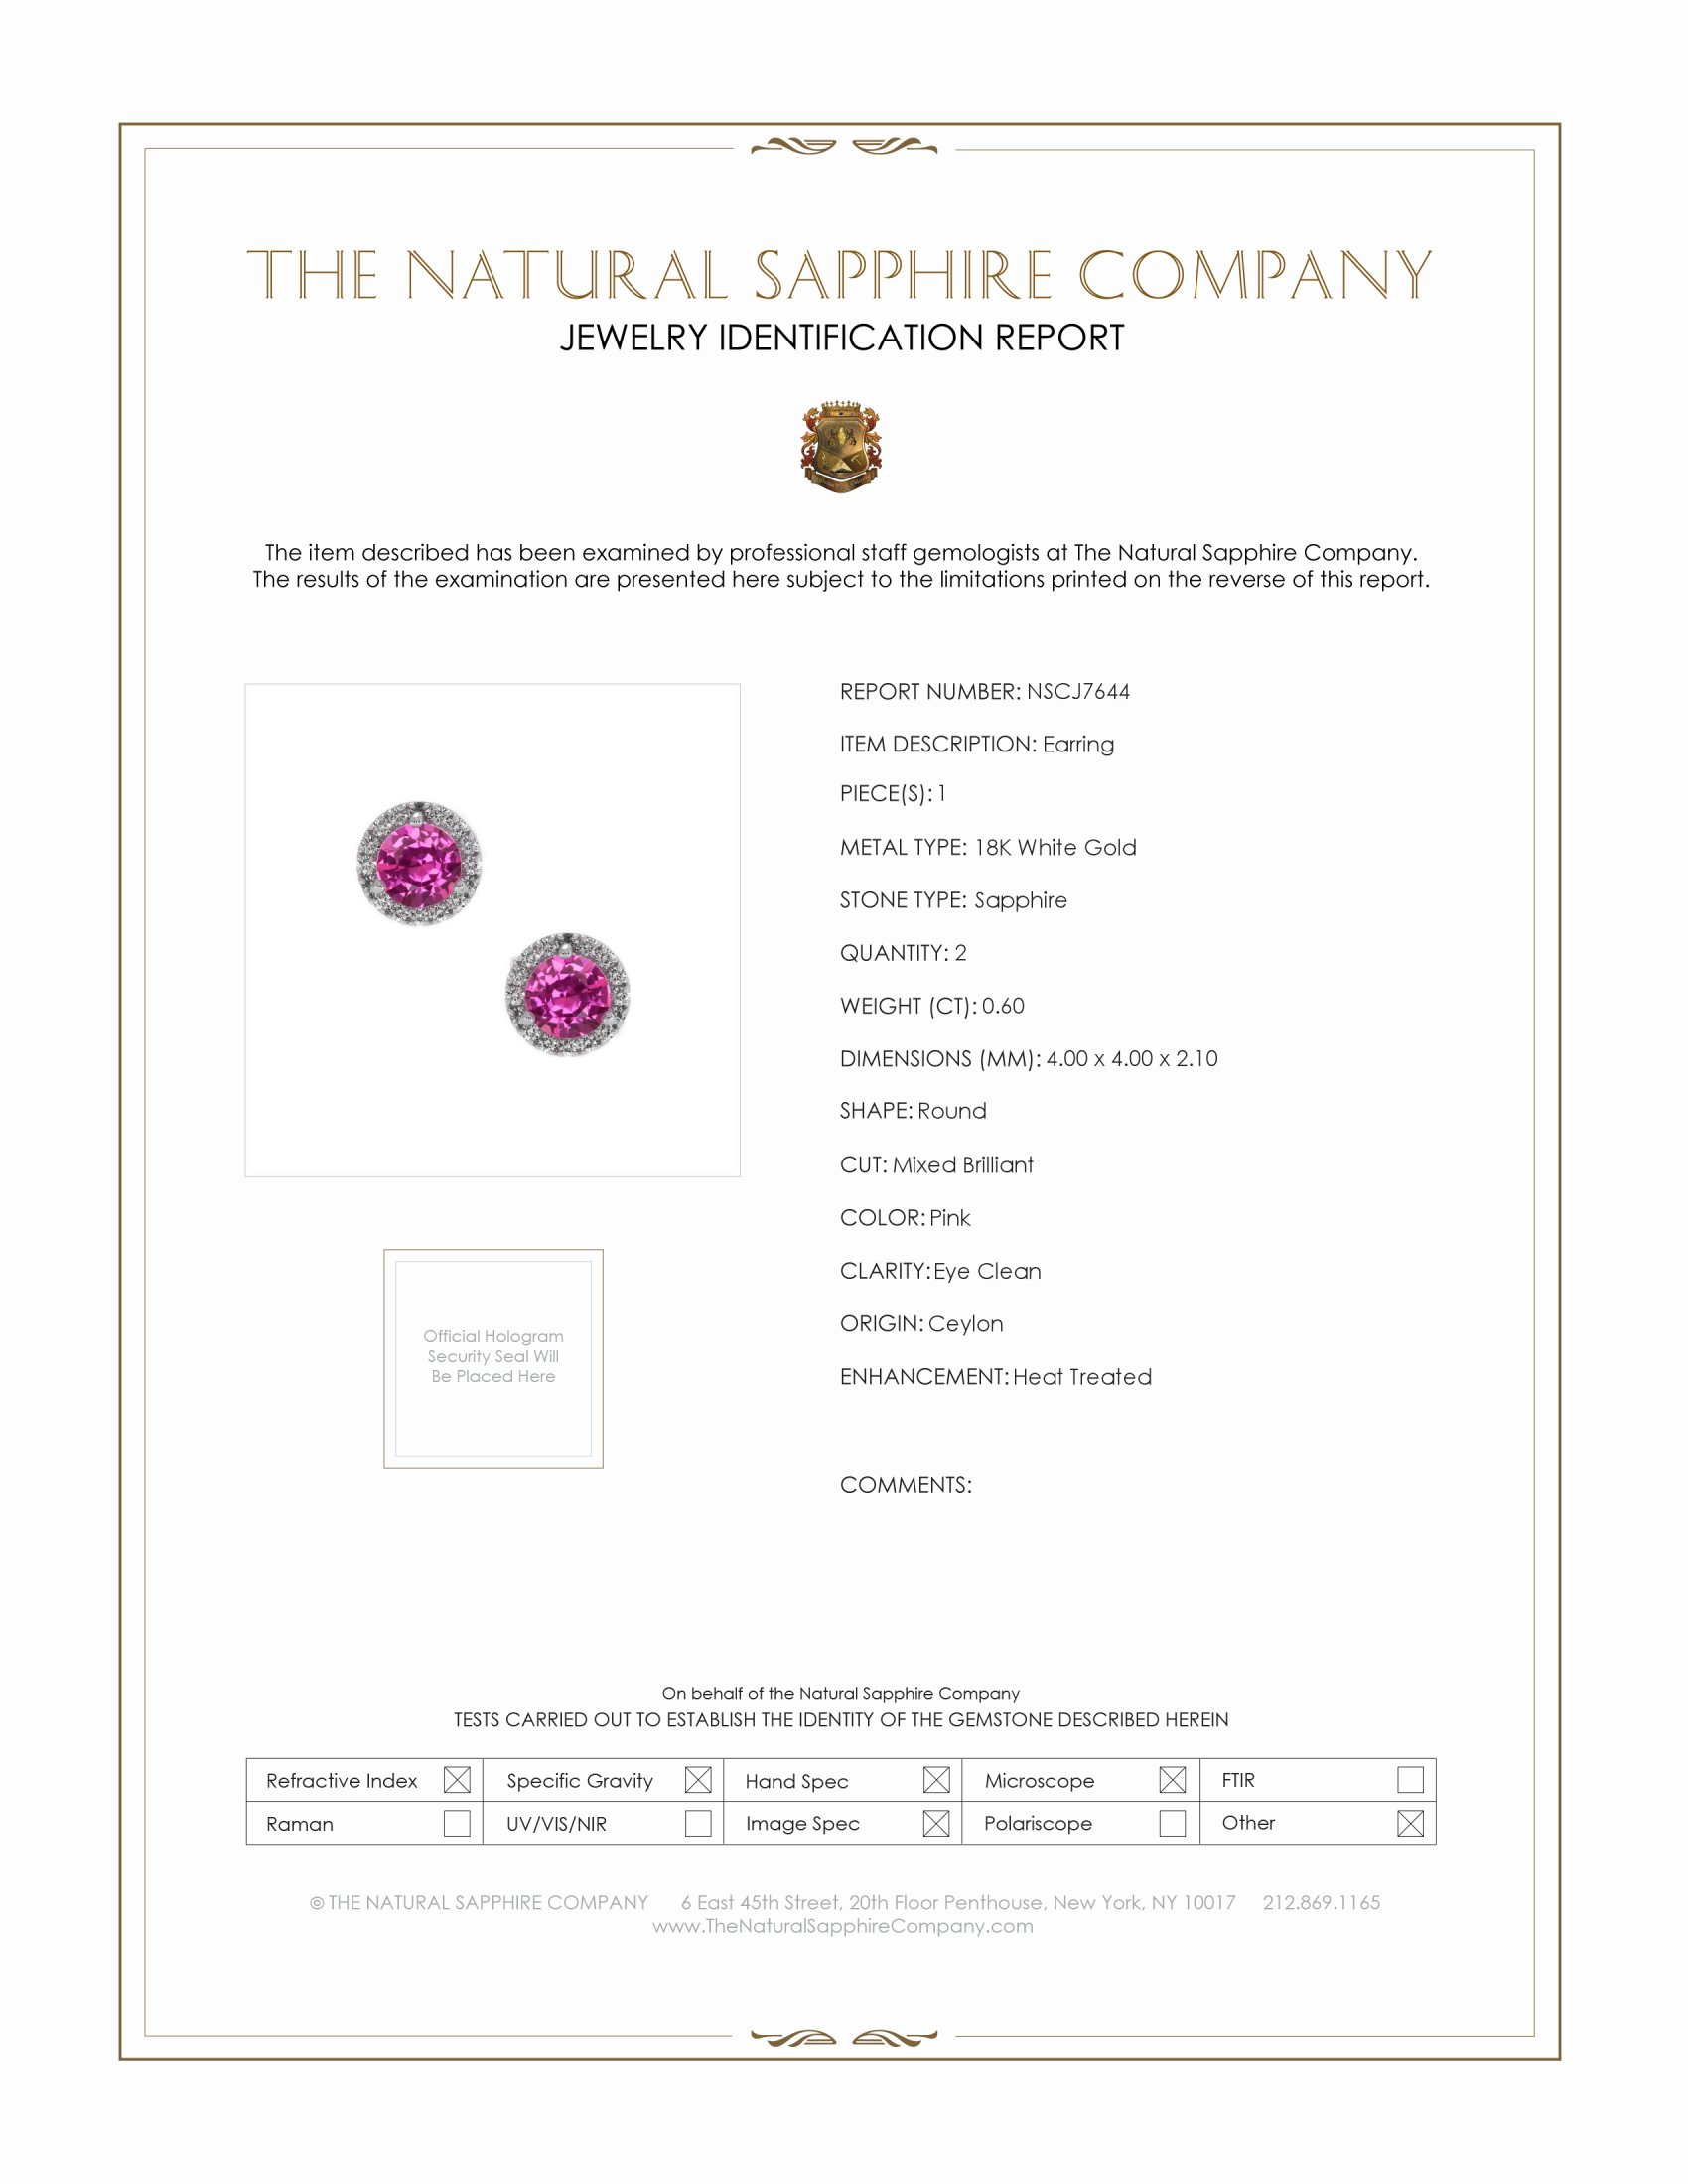 0.60ct Pink Sapphire Earring Certification